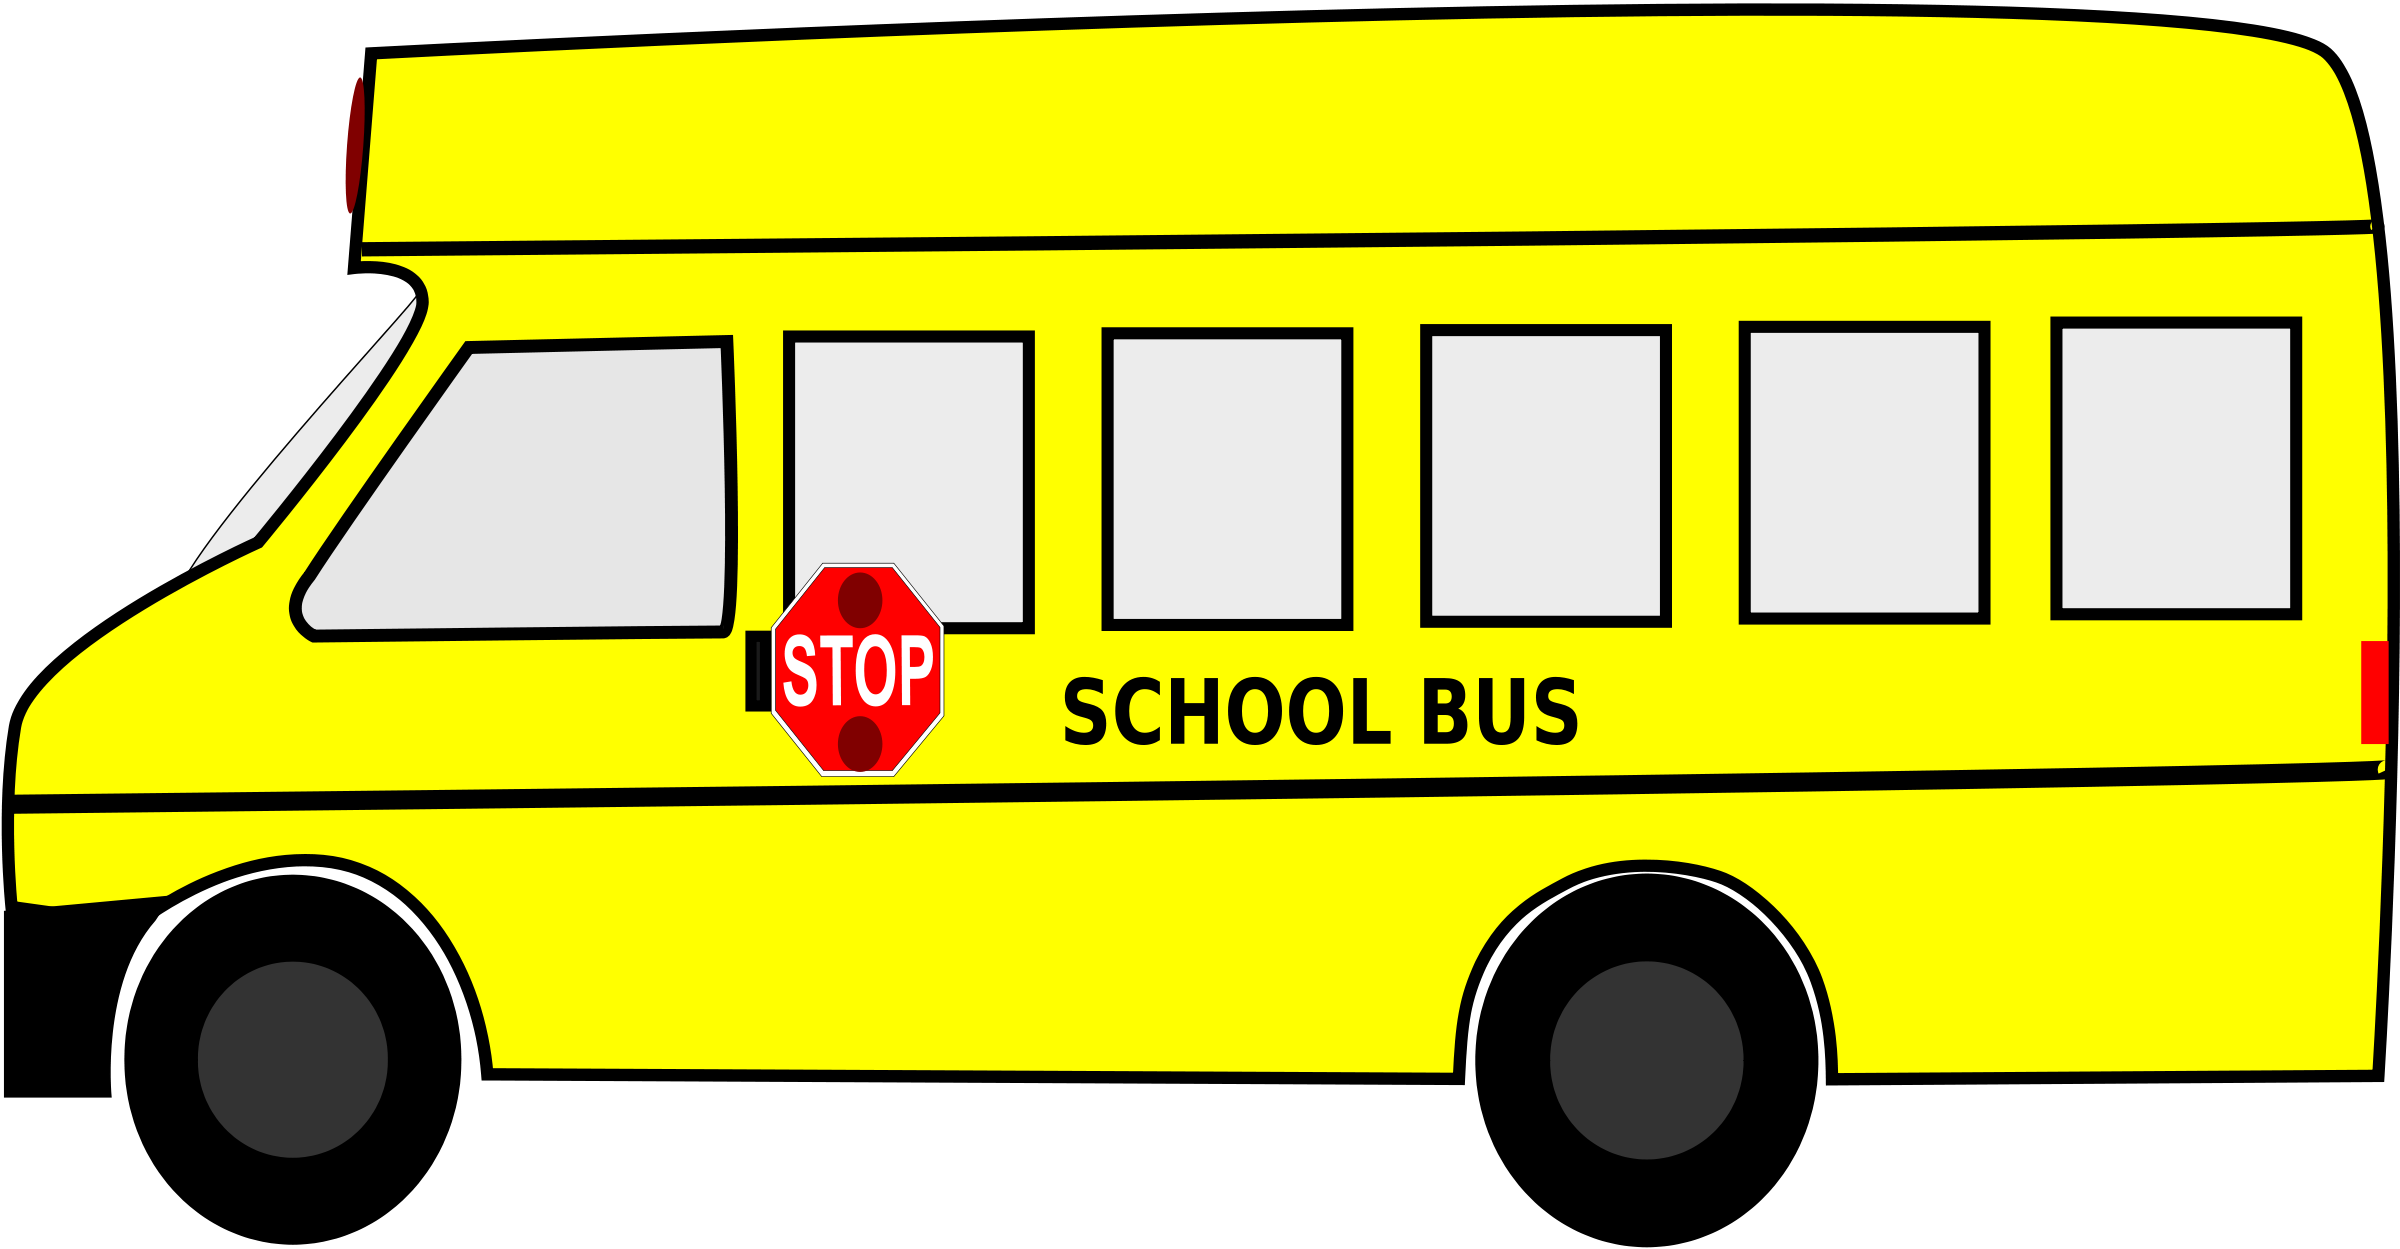 2400x1249 School Bus Black And White School Bus Clip Art Black And White